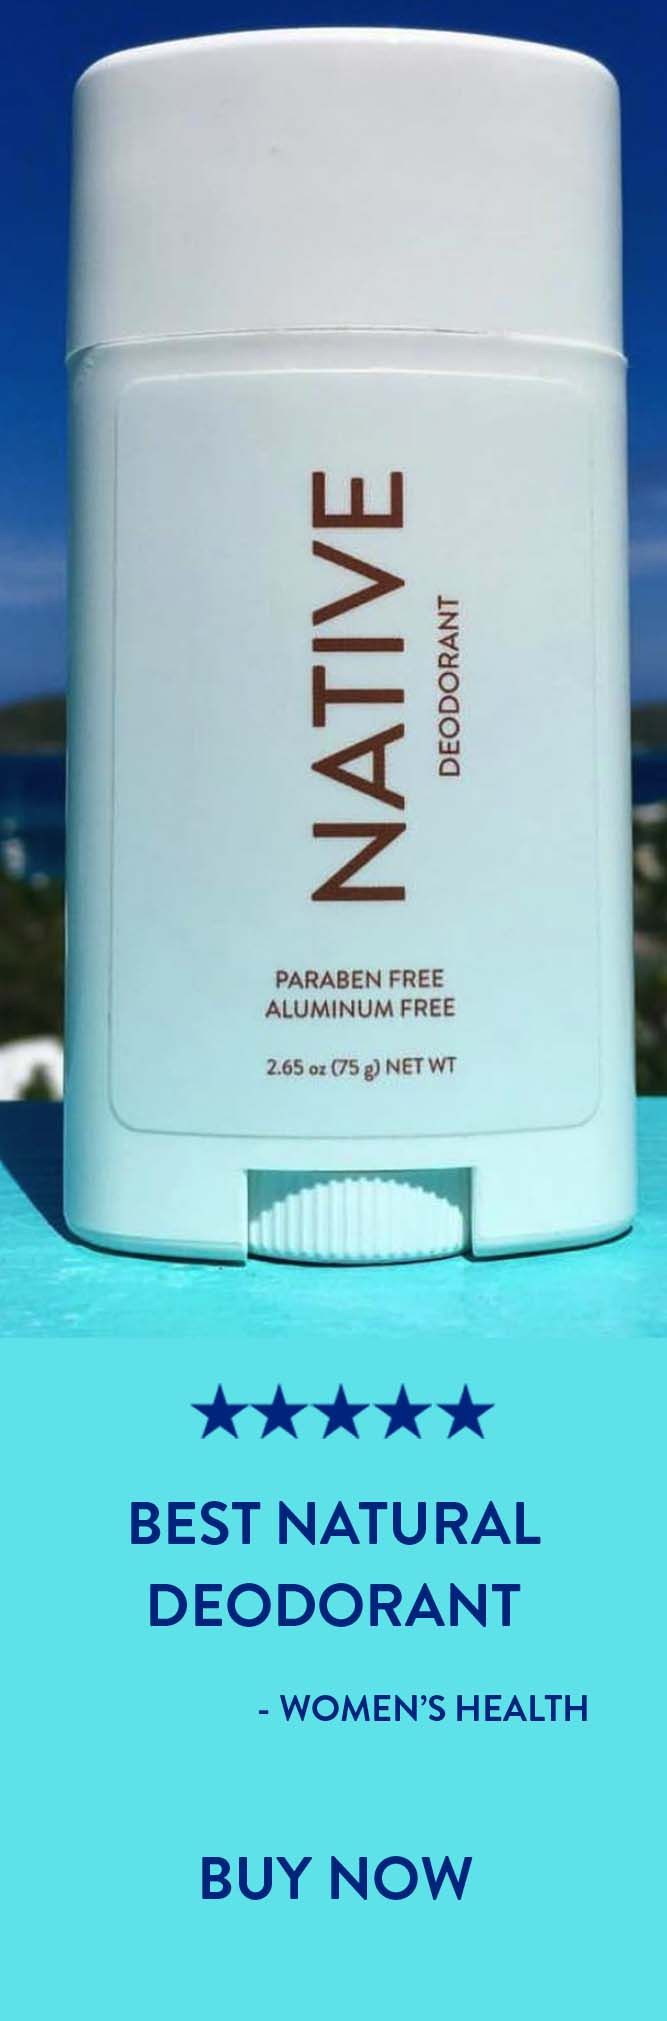 """""""If you want to try out a natural deodorant, I can't recommend enough that you start with this one."""" - Women's Health"""